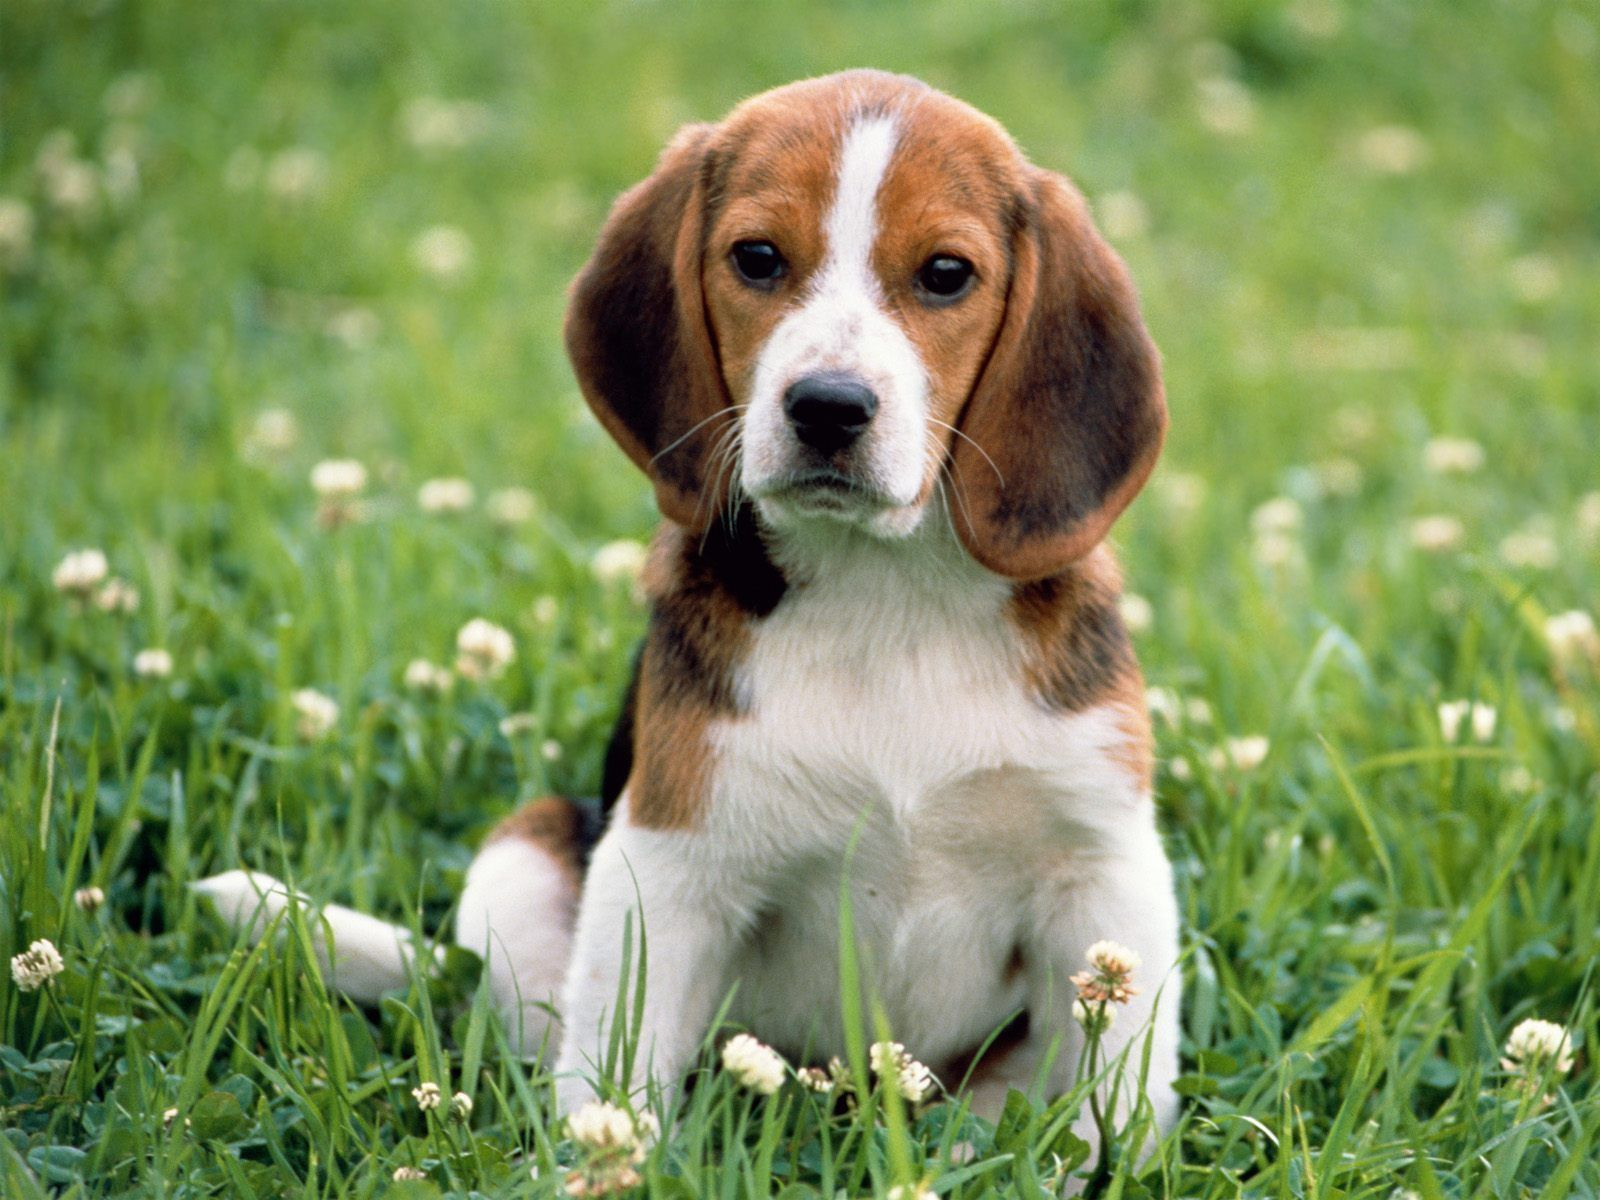 Details About Beagle Puppy Dog 8 X 10 Glossy Photo Picture